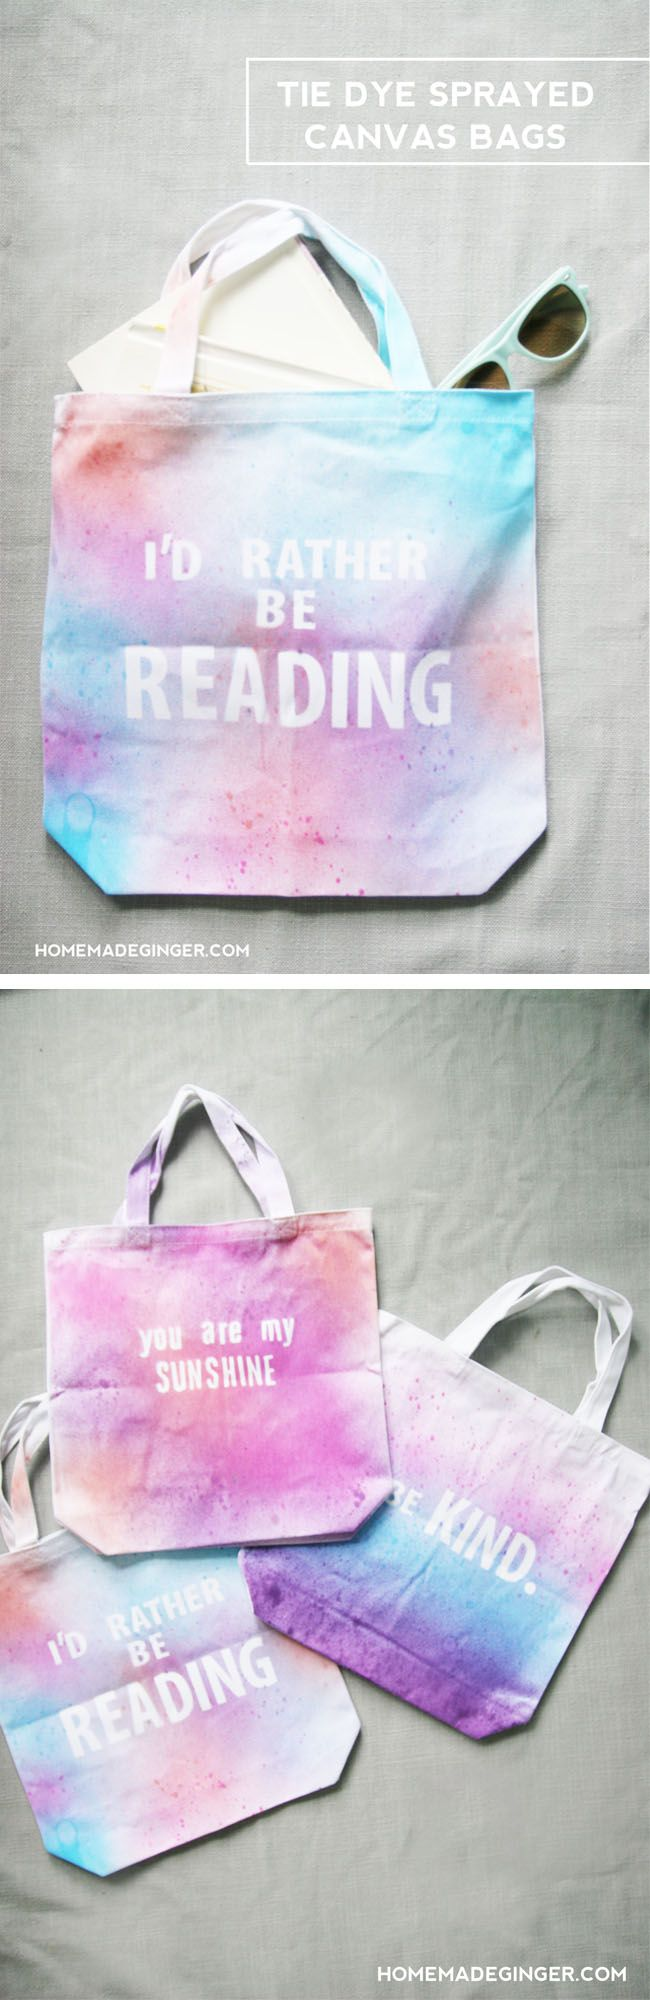 Make some tie dye sprayed canvas bags to say any word or phrase that you want! They are so easy and mess free! #tiedyeyoursummer @ilovetocreate